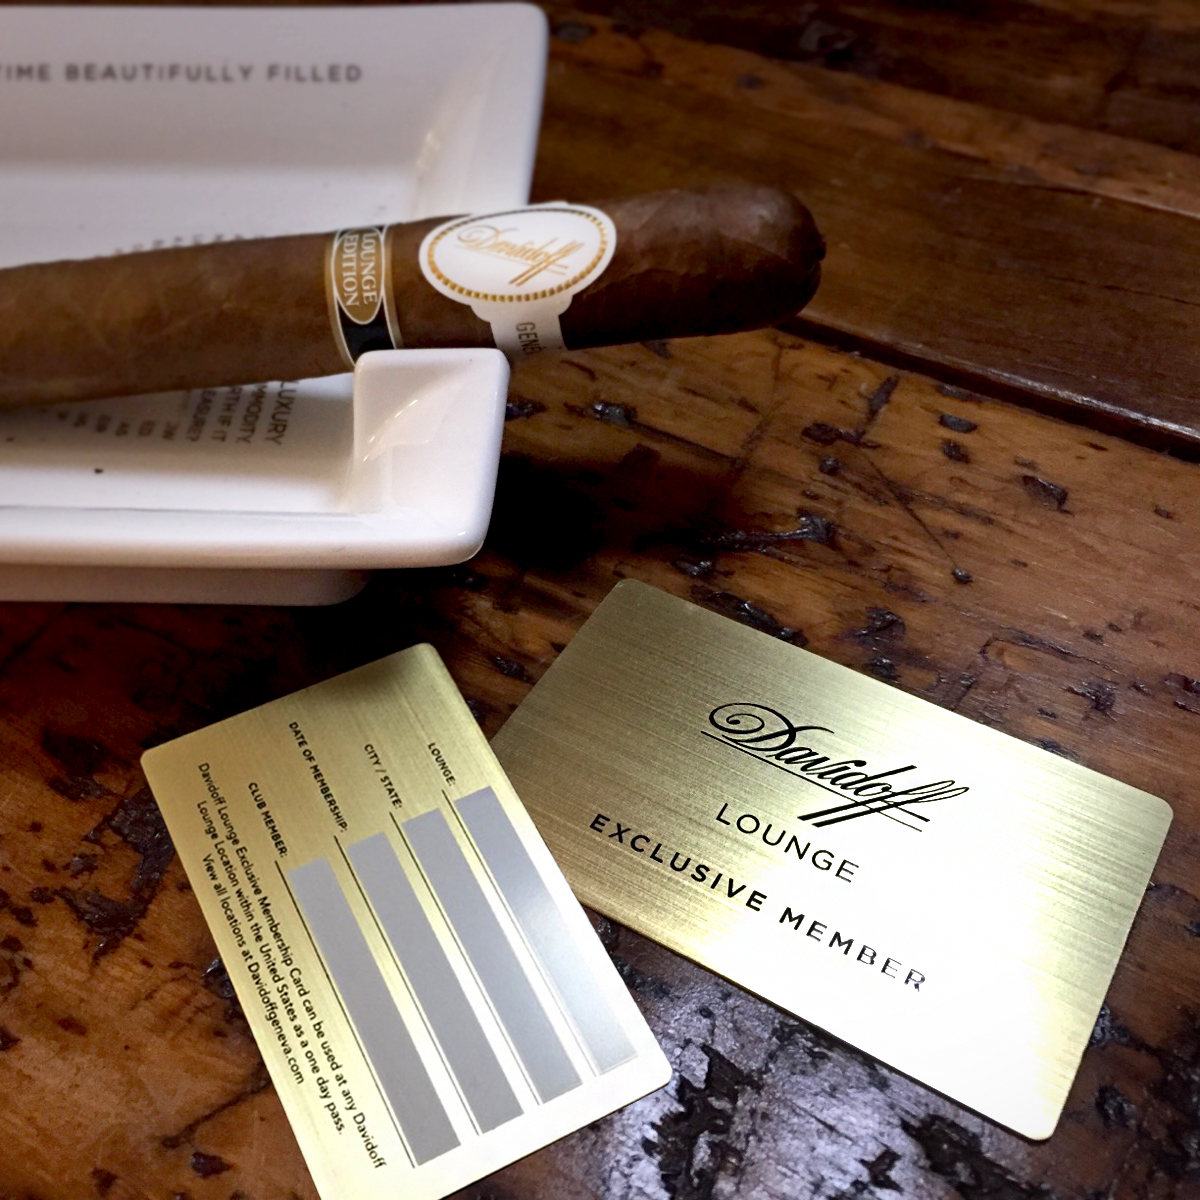 Join the Davidoff Lounge as an Exclusive Member, Located in The Tobacco Shop of Ridgewood, NJ - Bergen County